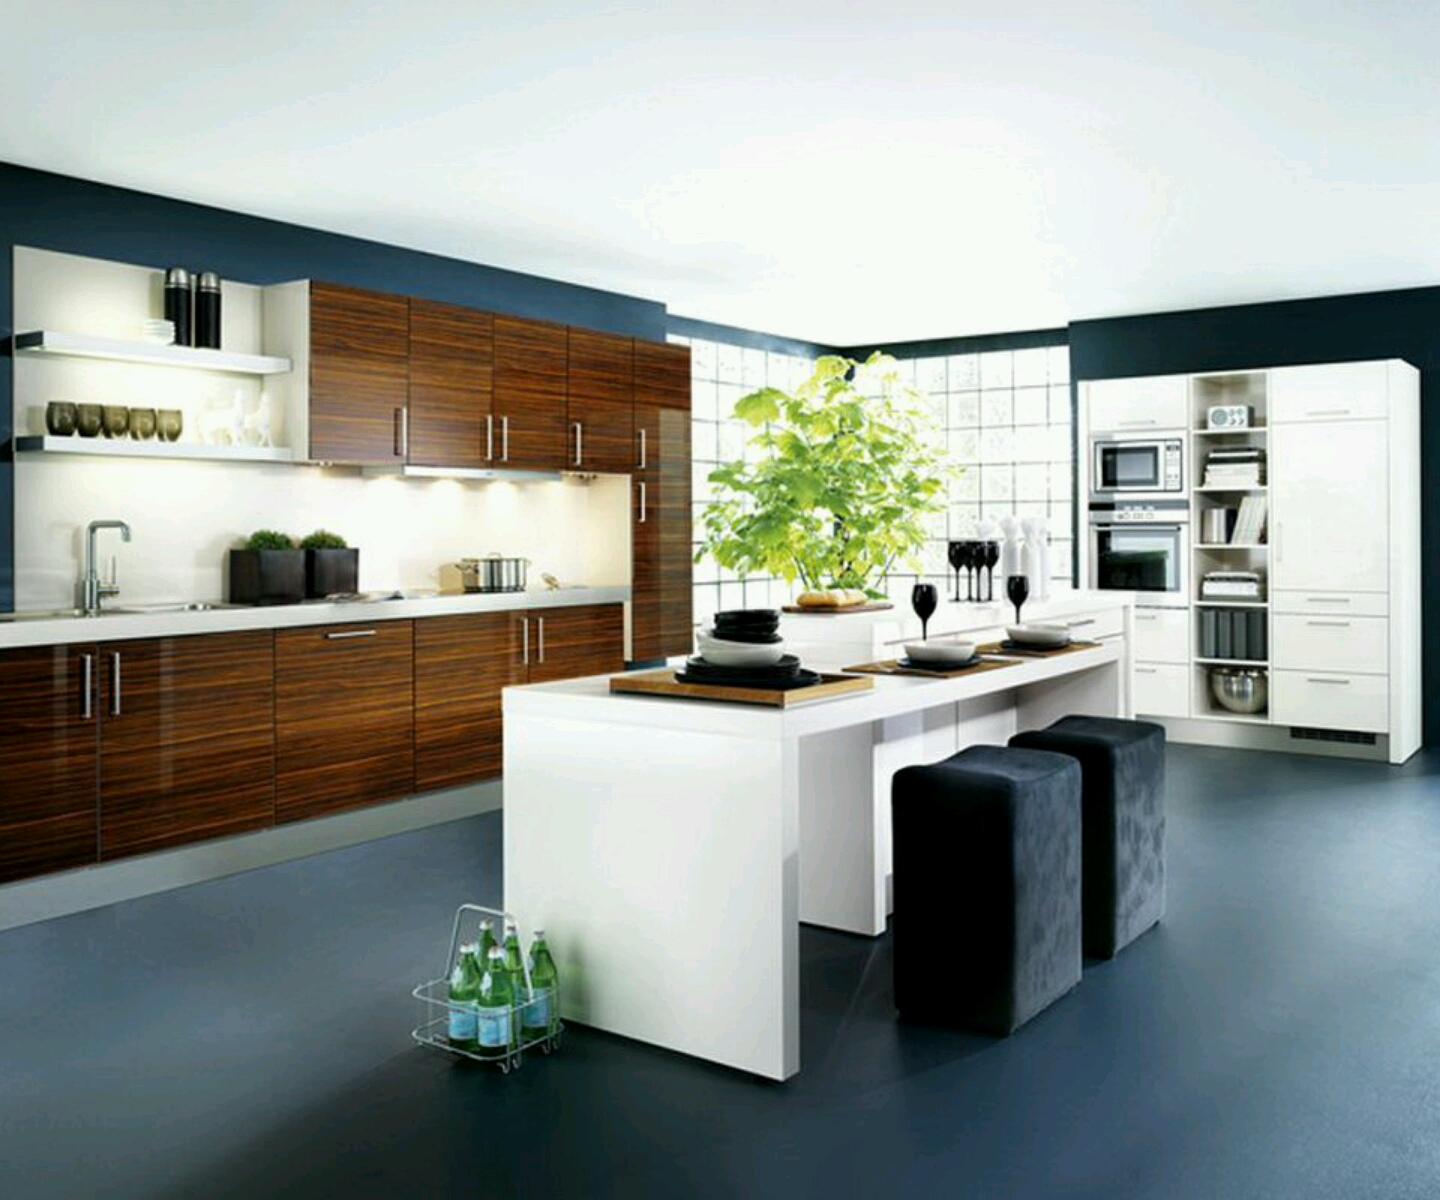 New Home Designs Latest Ultra Modern Kitchen Designs Ideas: New Home Designs Latest.: Kitchen Cabinets Designs Modern